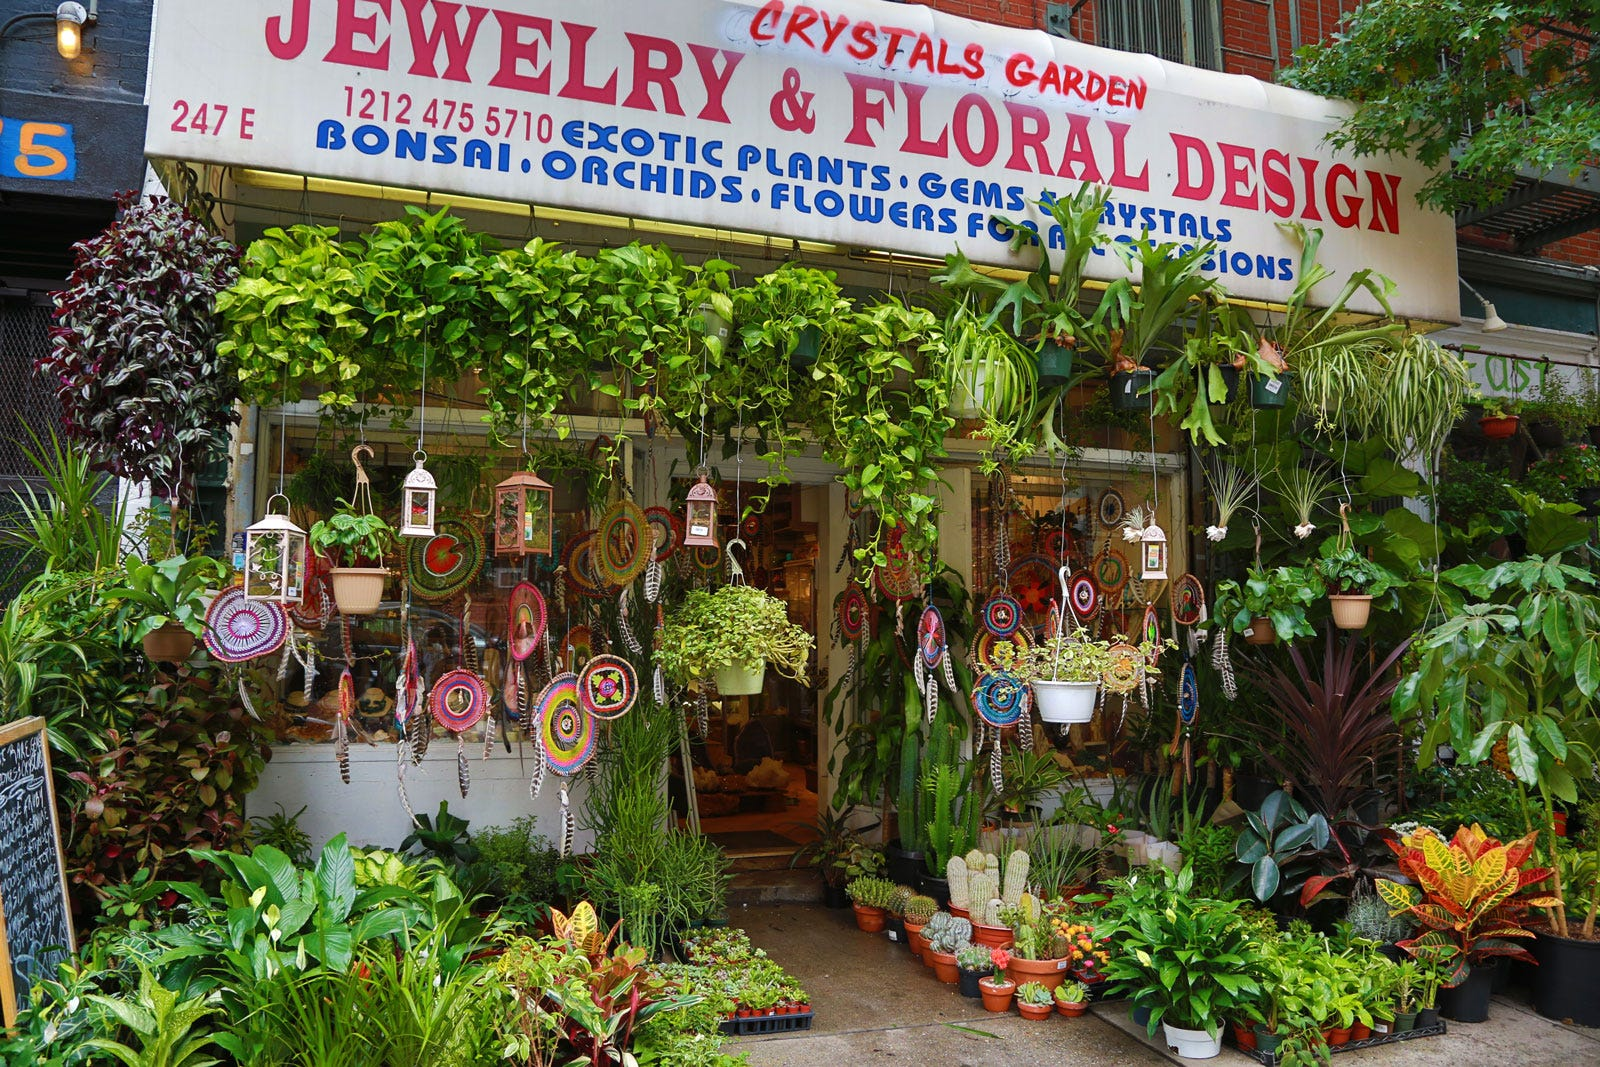 Outstanding Nyc Occult Shops  New Age Stores In New York With Lovely Argos Childrens Garden Toys Besides Garden Fertiliser Furthermore Midnight In The Garden Of Good And Evil Movie Cast With Agreeable Covent Garden Laminates Also Garden Weathervanes In Addition Cheap Garden Equipment And Sherborne Castle Gardens As Well As Jersey Garden New York Additionally Garden Wooden Table And Chairs From Refinerycom With   Lovely Nyc Occult Shops  New Age Stores In New York With Agreeable Argos Childrens Garden Toys Besides Garden Fertiliser Furthermore Midnight In The Garden Of Good And Evil Movie Cast And Outstanding Covent Garden Laminates Also Garden Weathervanes In Addition Cheap Garden Equipment From Refinerycom